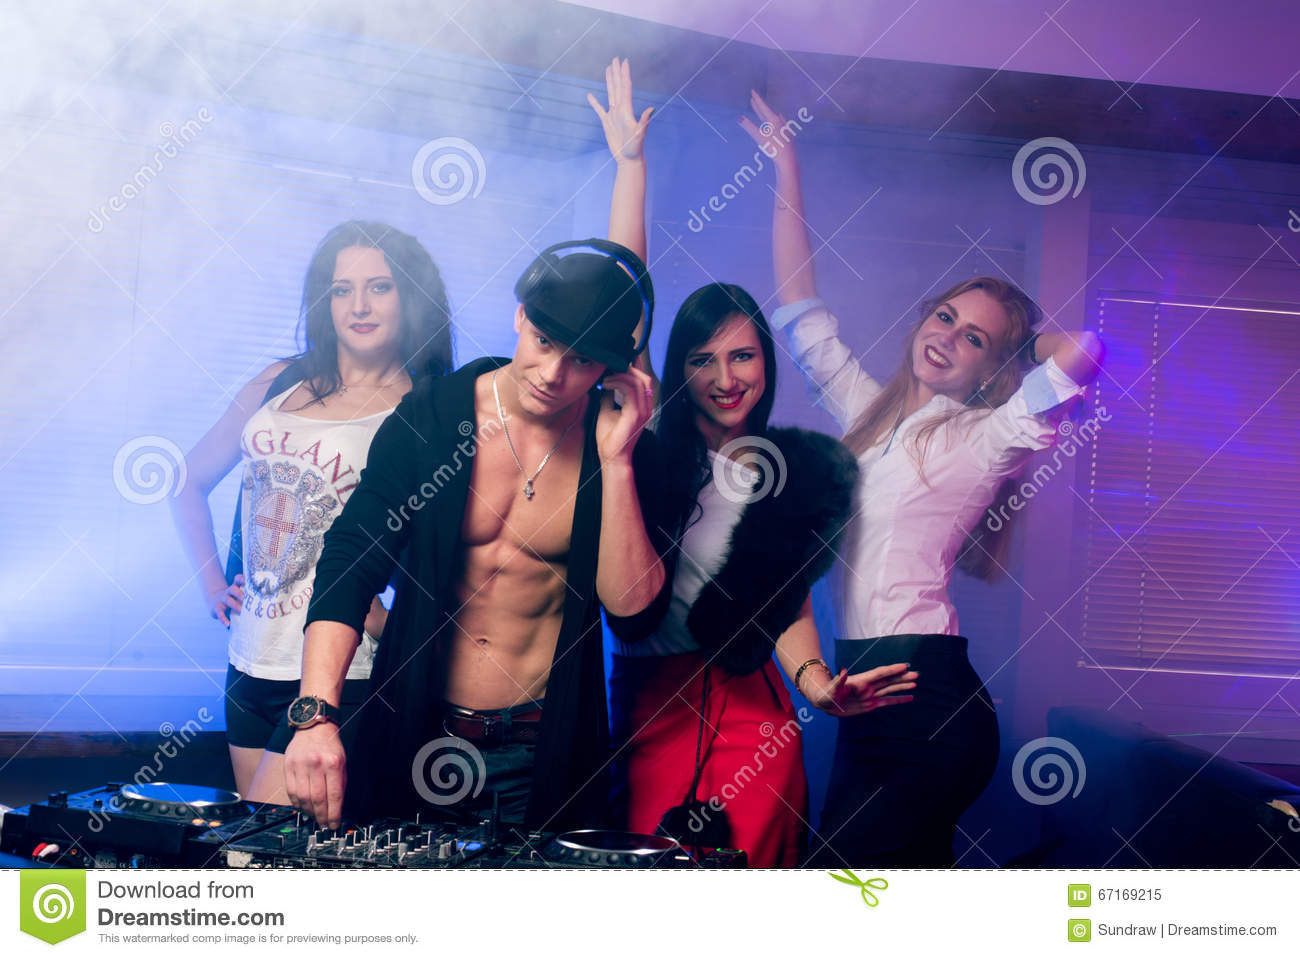 People In Club Or Bar Drinking Champagne Royalty Free ...  |People Having Fun In A Club